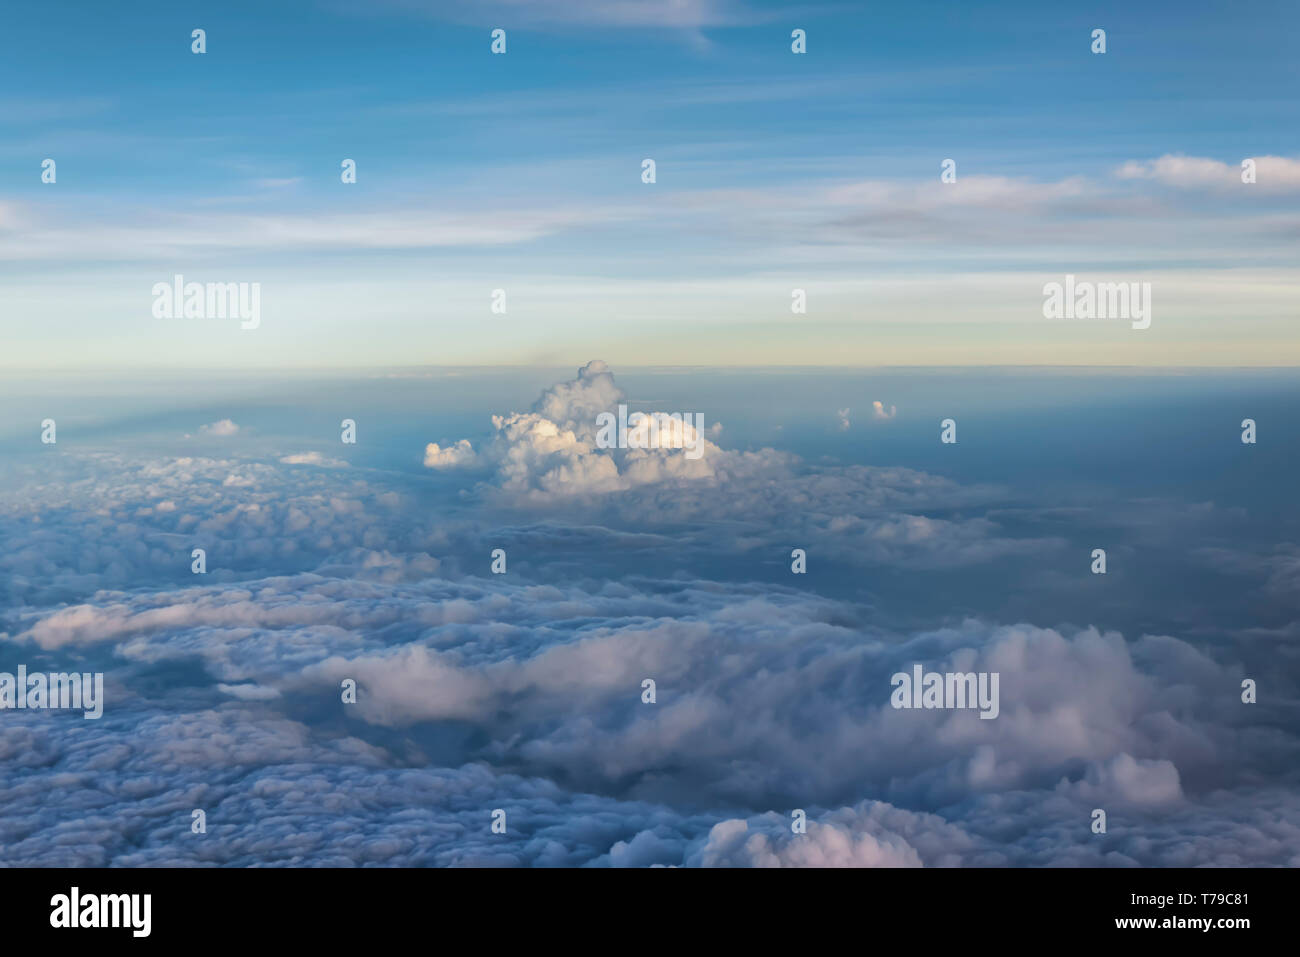 Aerial view of grey, billowy monsoon clouds hanging over the plains of India. Rain clouds--Cumulonimbus and Cumulus clouds are visible in the frame. - Stock Image